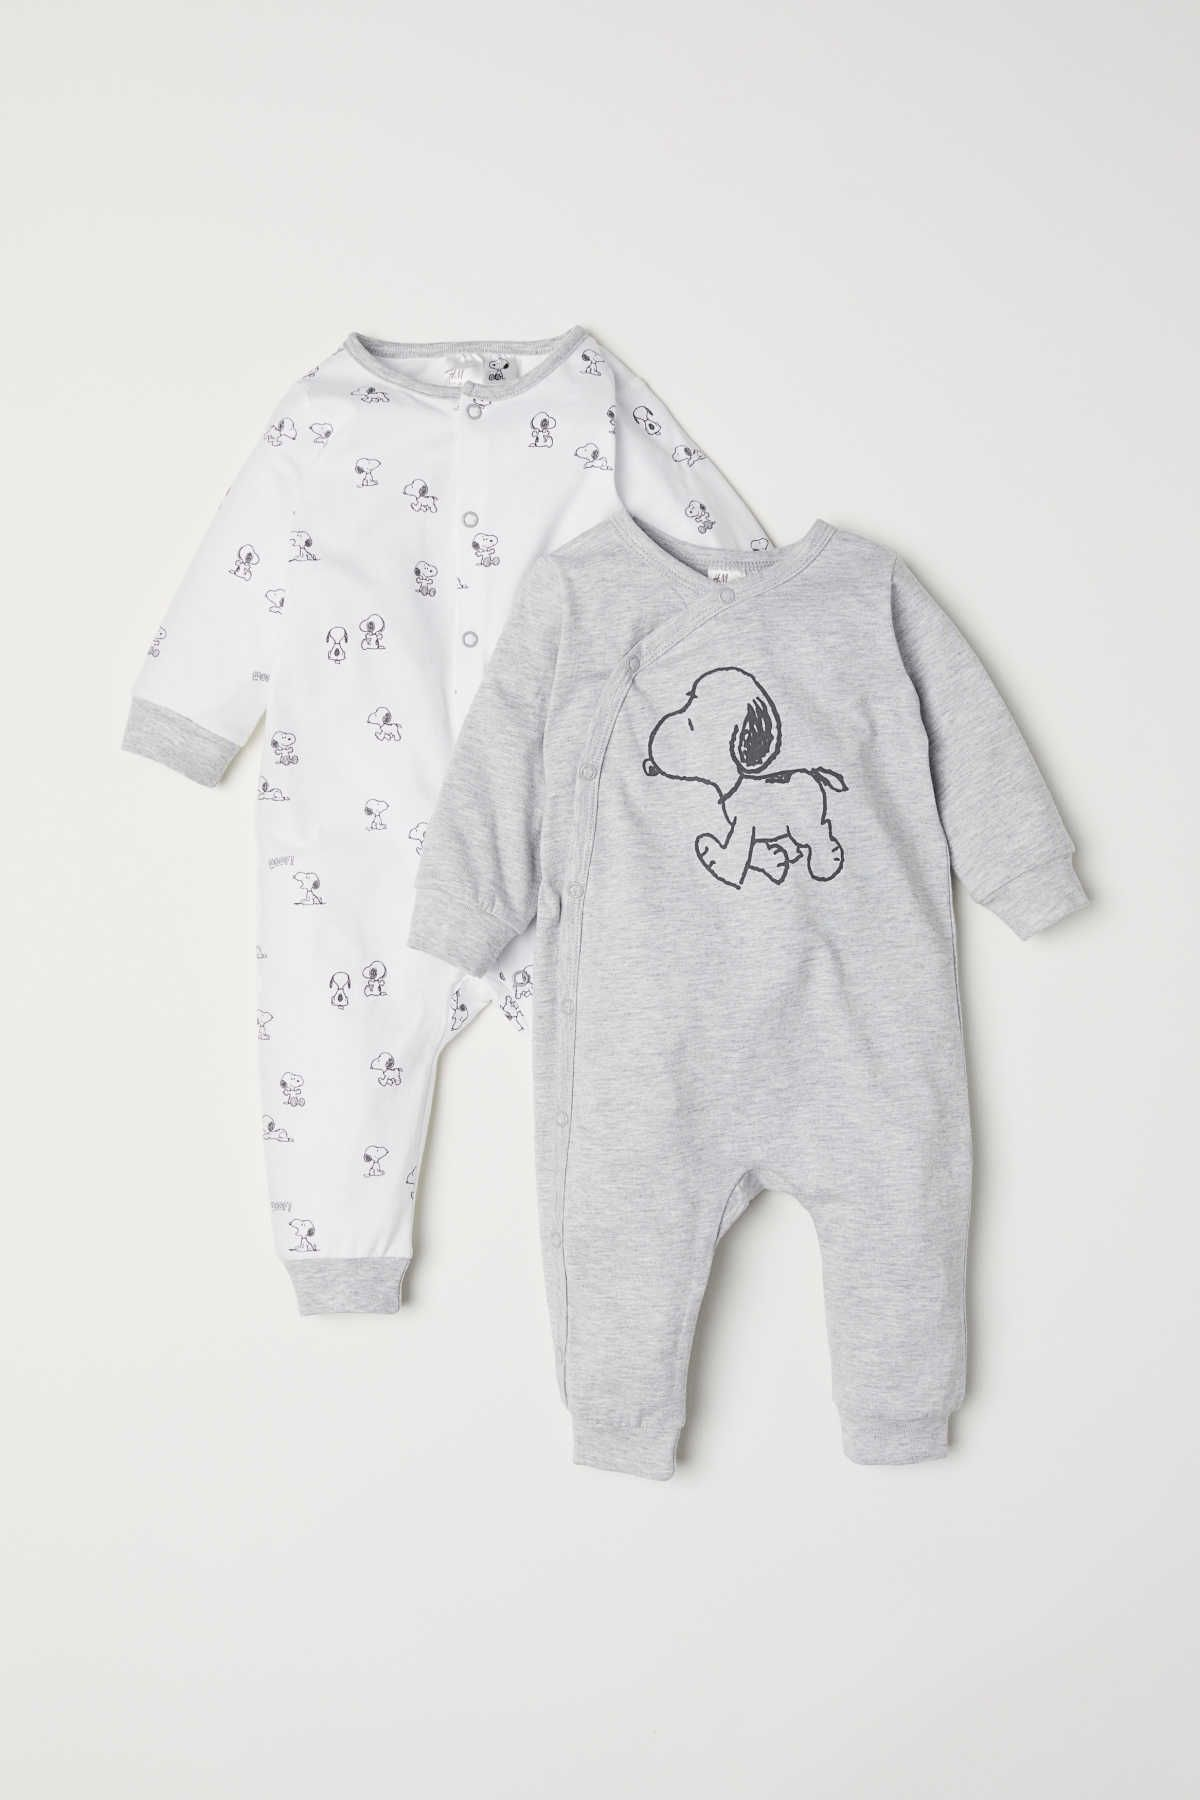 Light grey marl/Snoopy. All-in-one pyjamas in soft cotton jersey